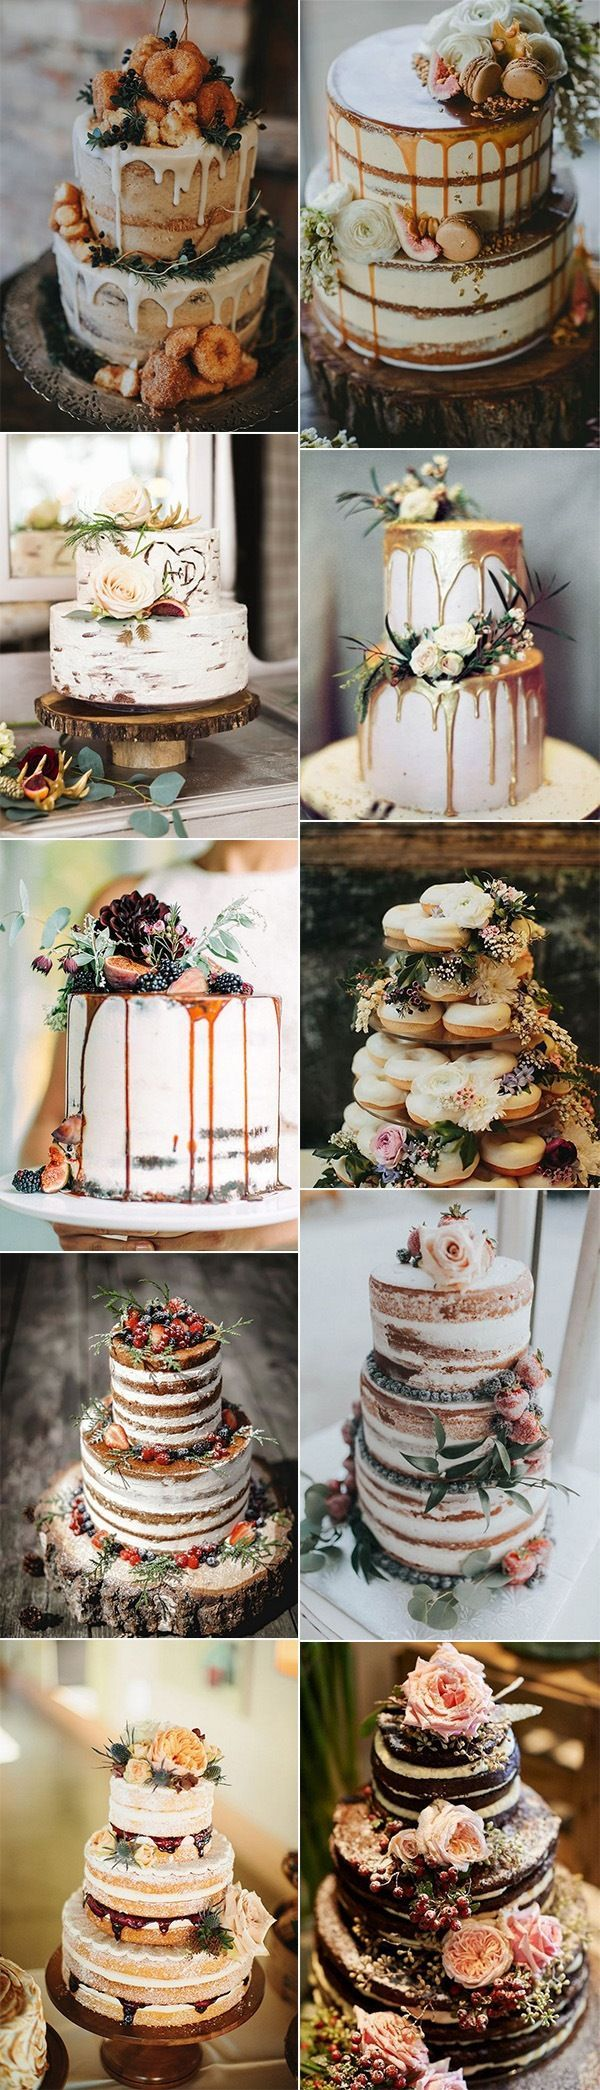 20 Delicious Fall Wedding Cakes that WOW...